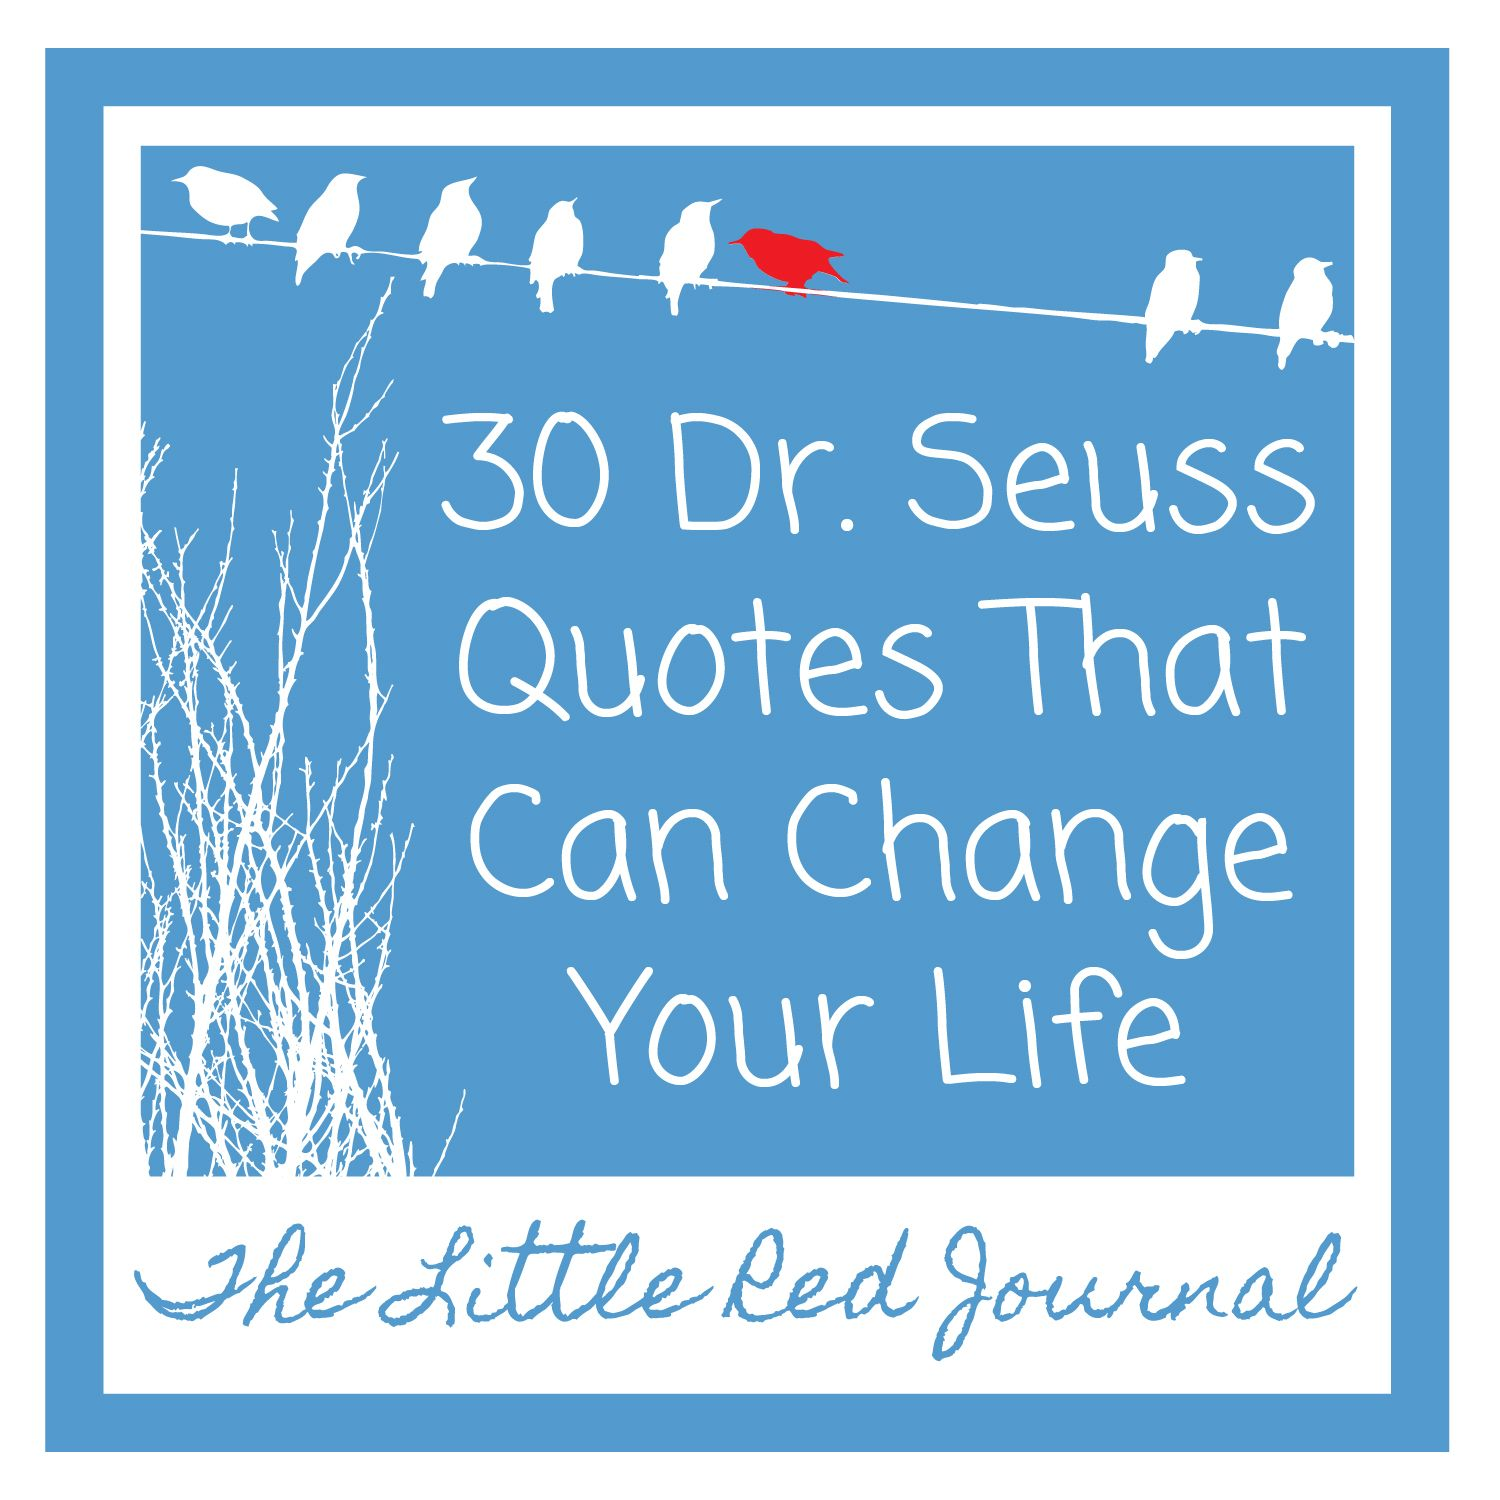 30 Dr Seuss Quotes that Can Change Your Life